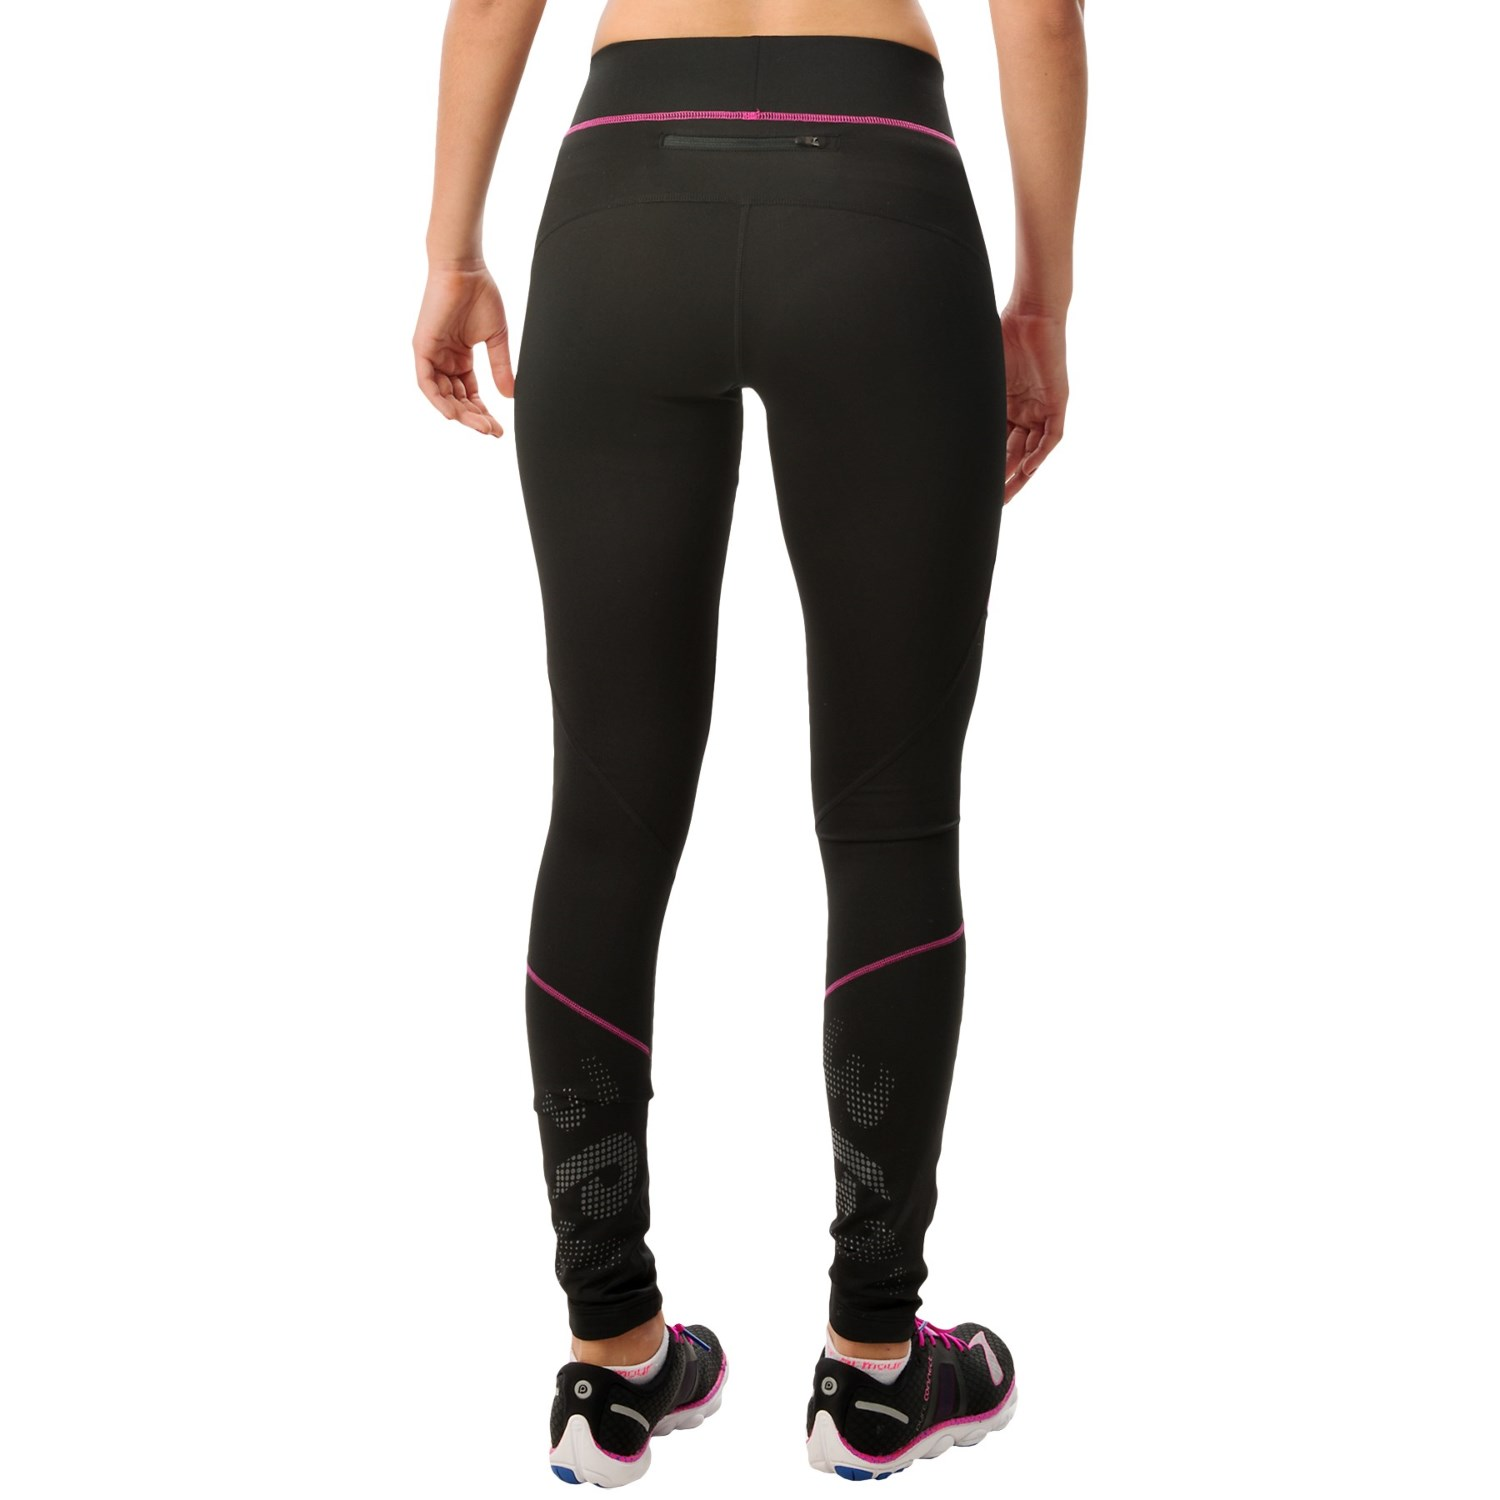 Find great deals on eBay for long running tights. Shop with confidence.